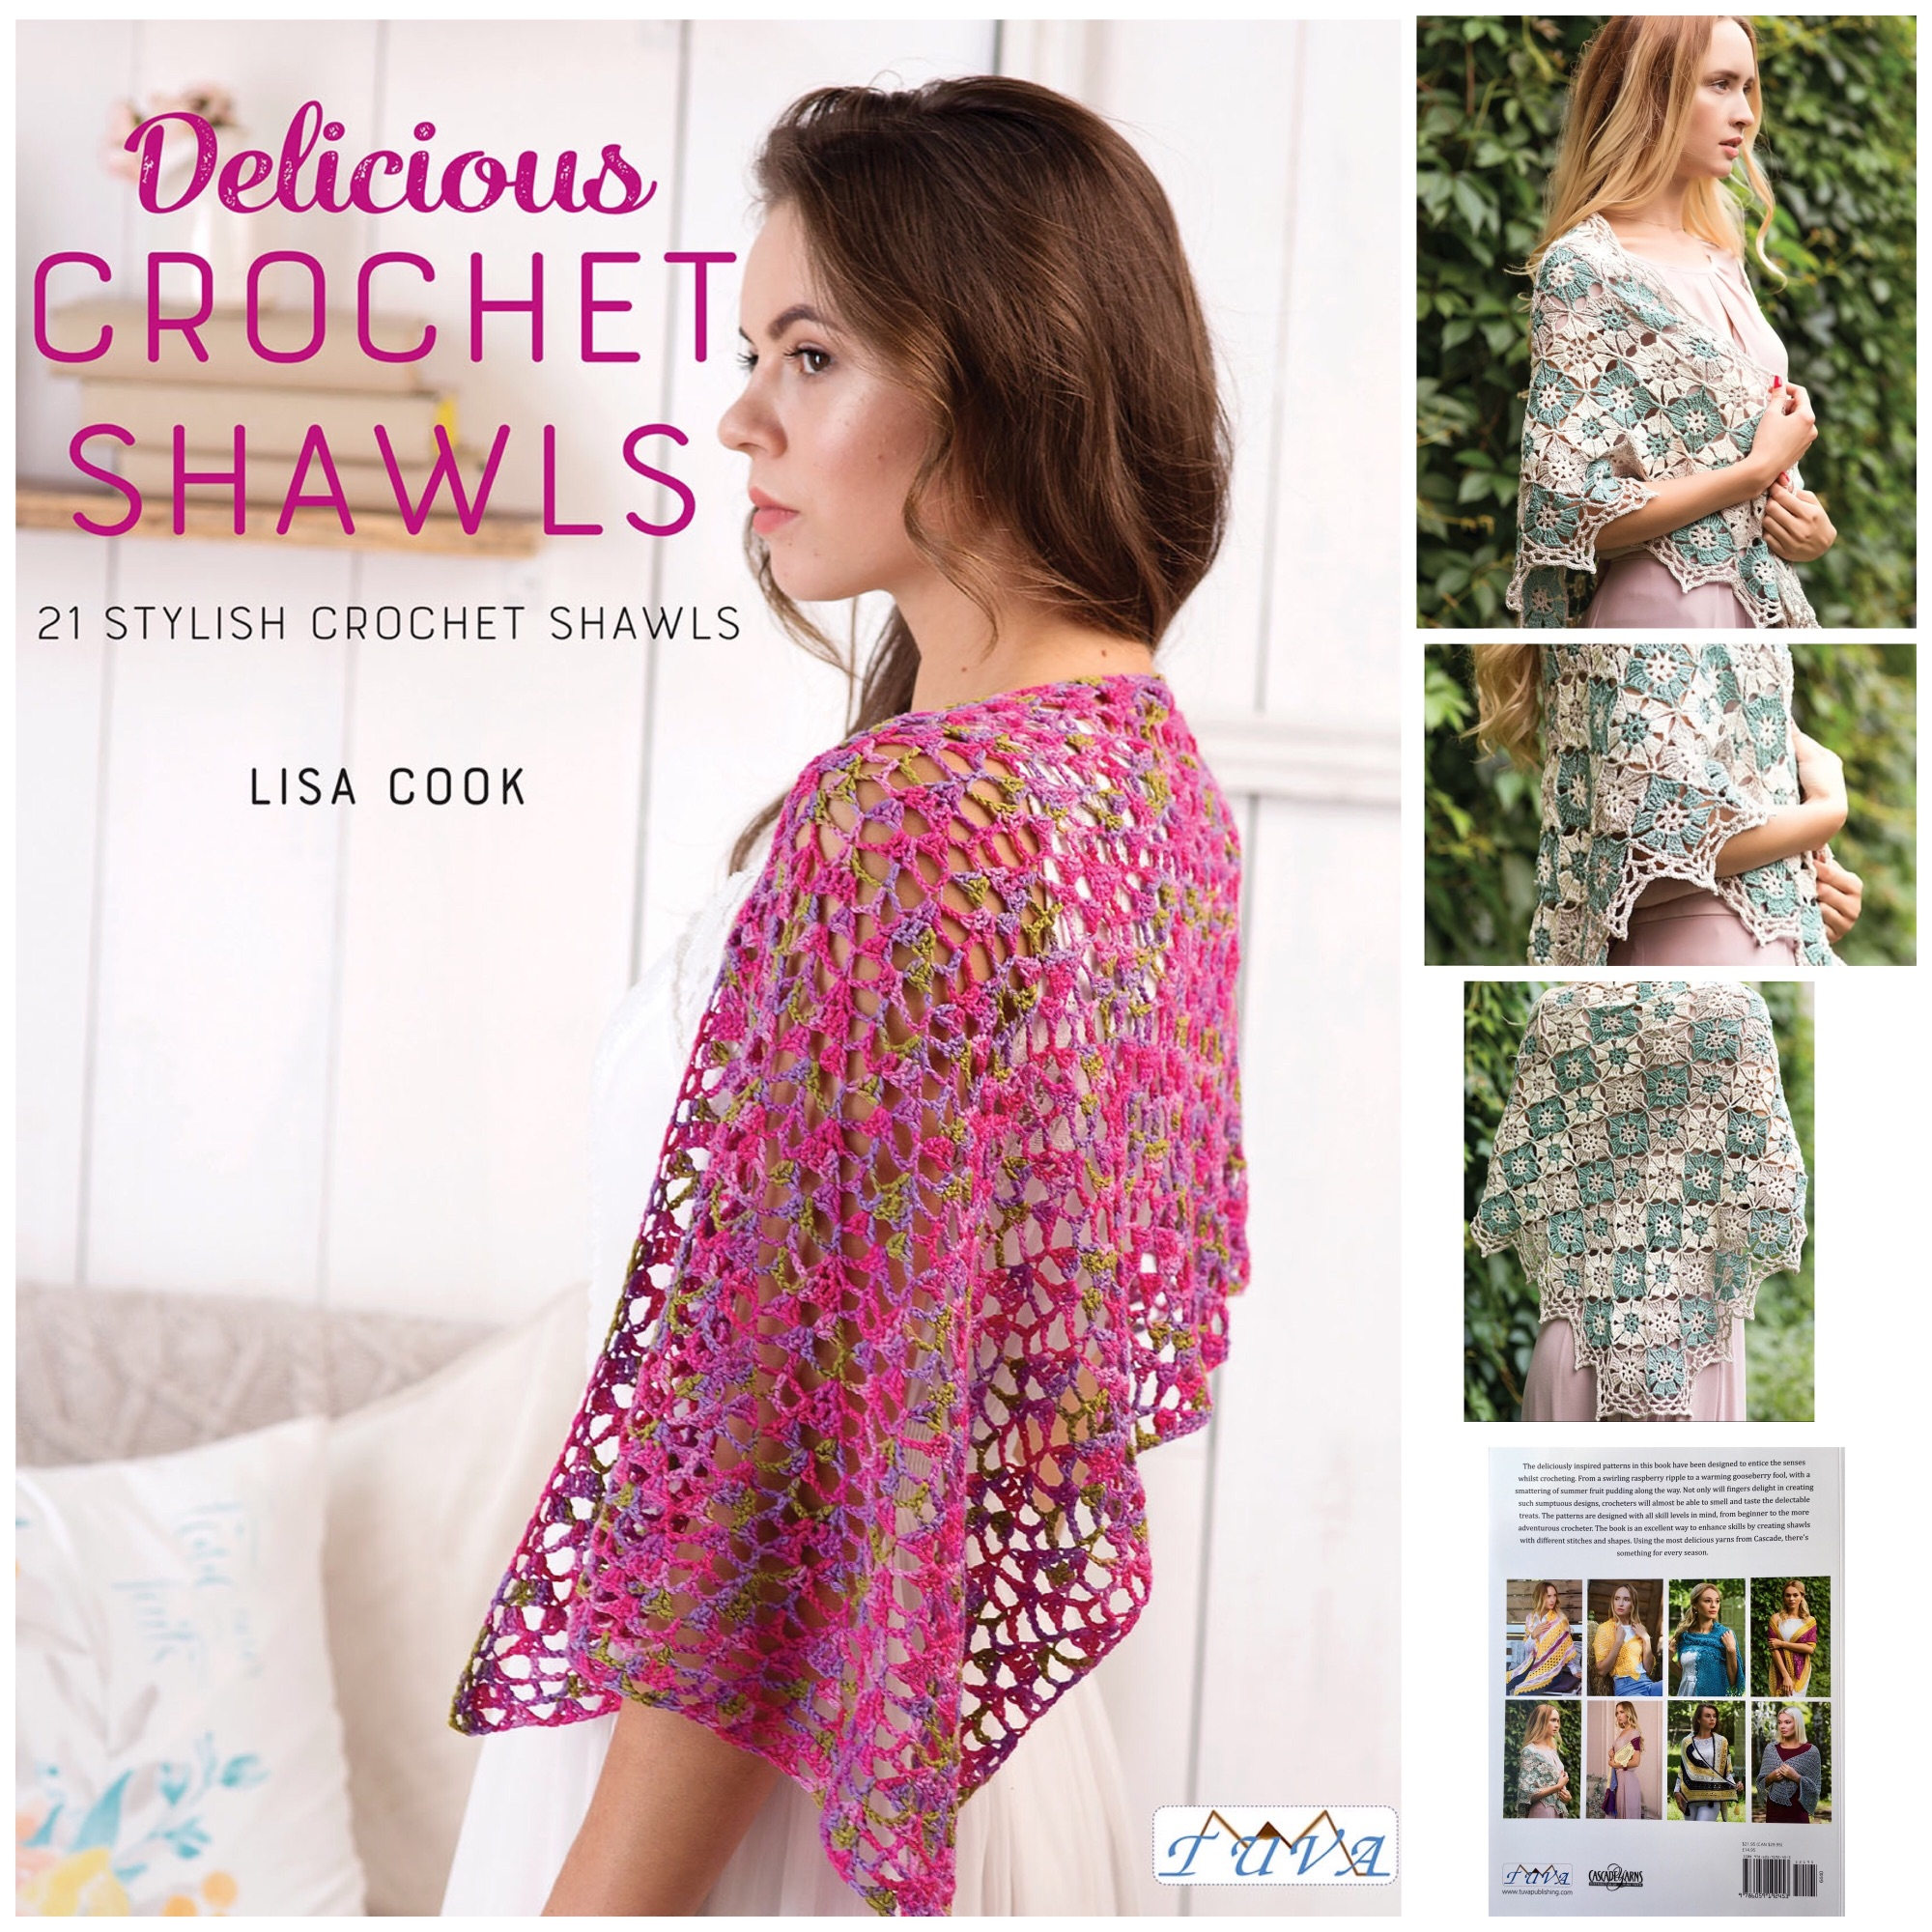 tuva book delicious crochet shawls lisa cook